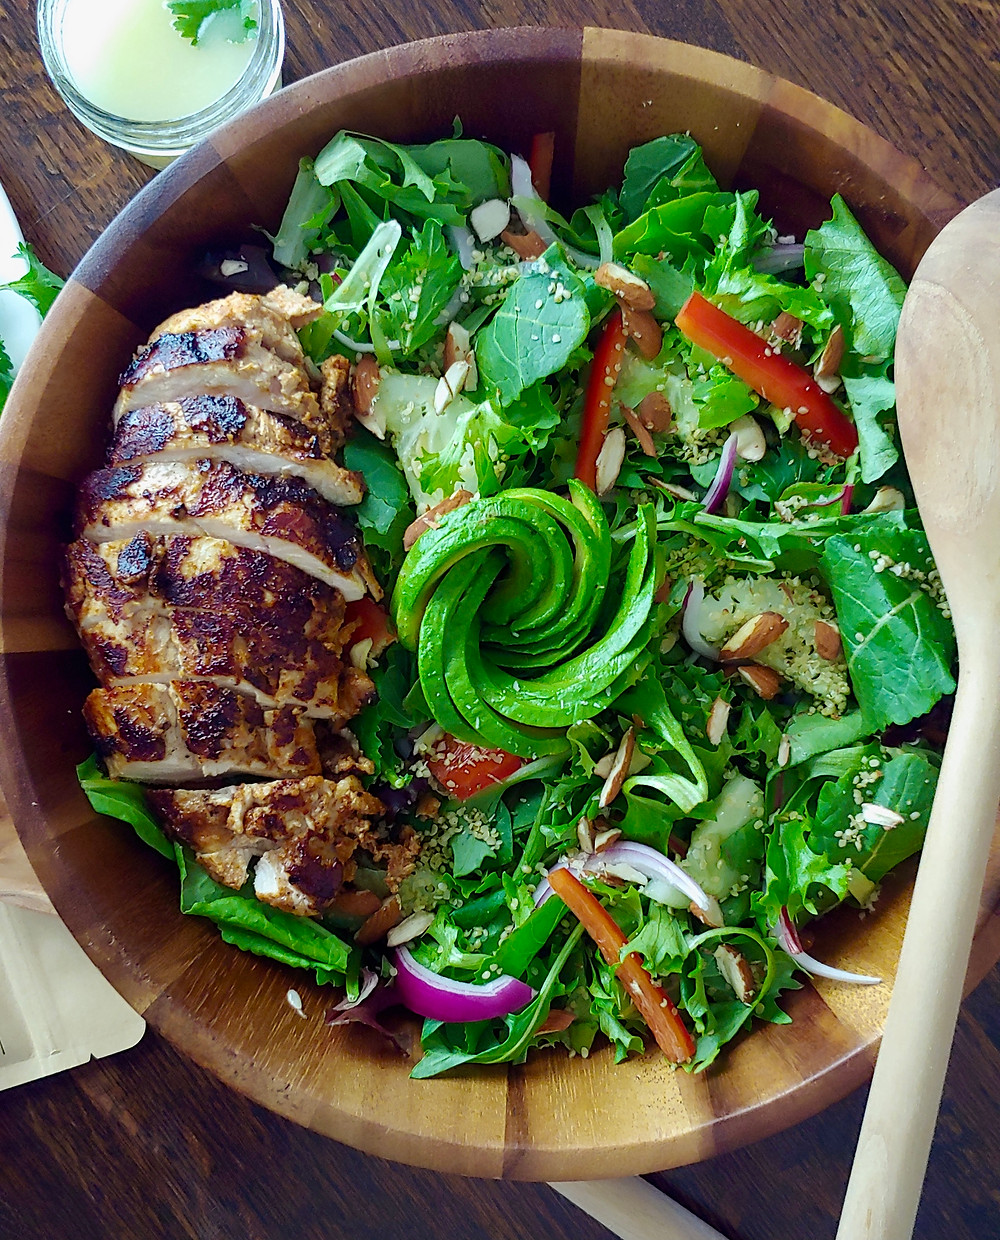 Pan seared chicken breast with a tandoori dry rub served with an avocado salad